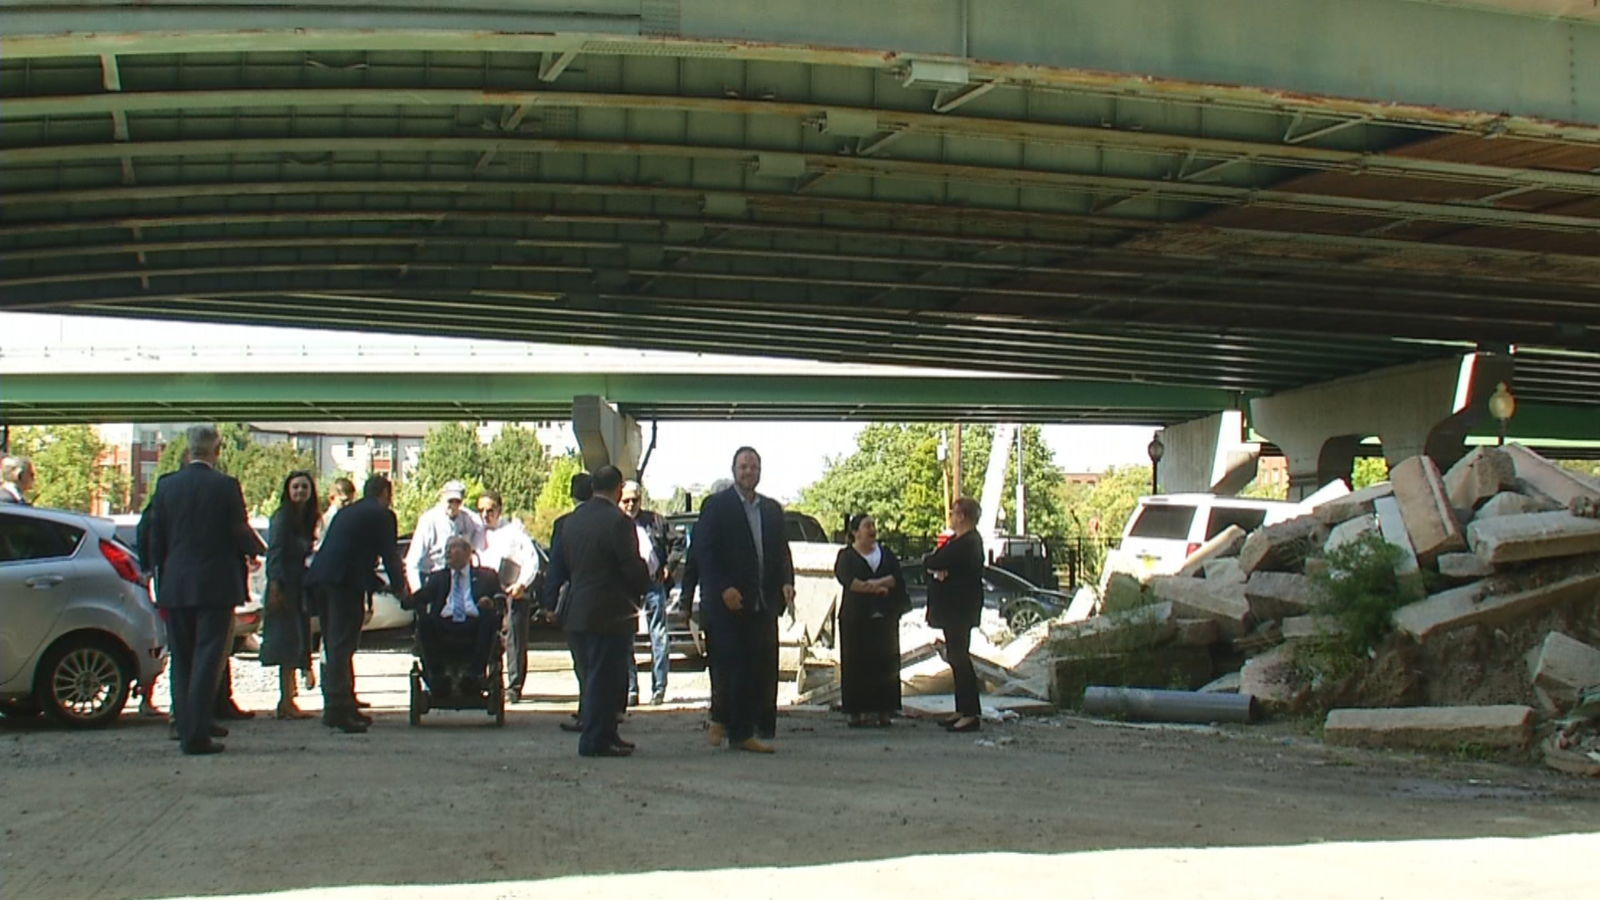 Rhode Island Department of Transportation Director and members of the congressional delegation hold a news conference under the Providence Viaduct, Friday, Sept. 13, 2019. (WJAR)